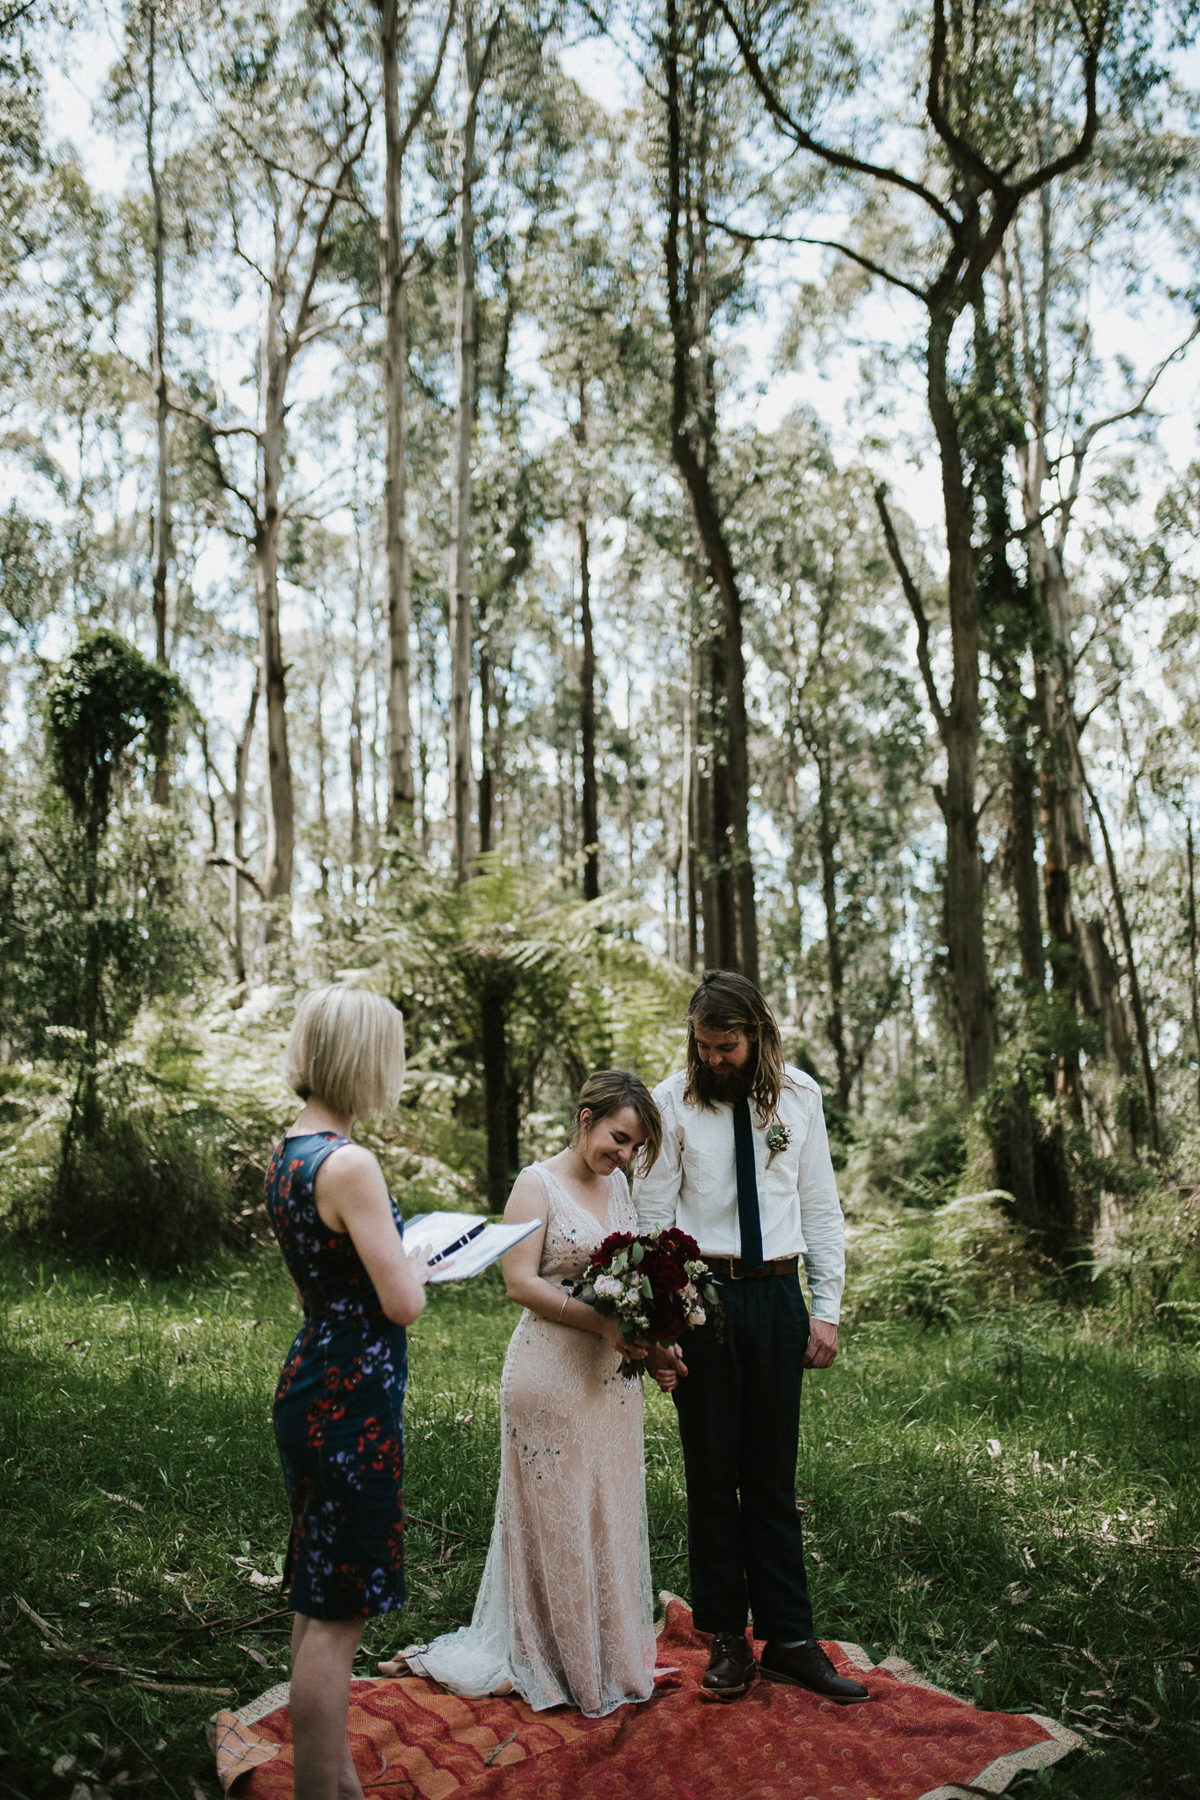 Berenice&Sam_Melbourne-Dandenongs-Elopement_Relaxed-Quirky-Candid-Wedding-Photography_47